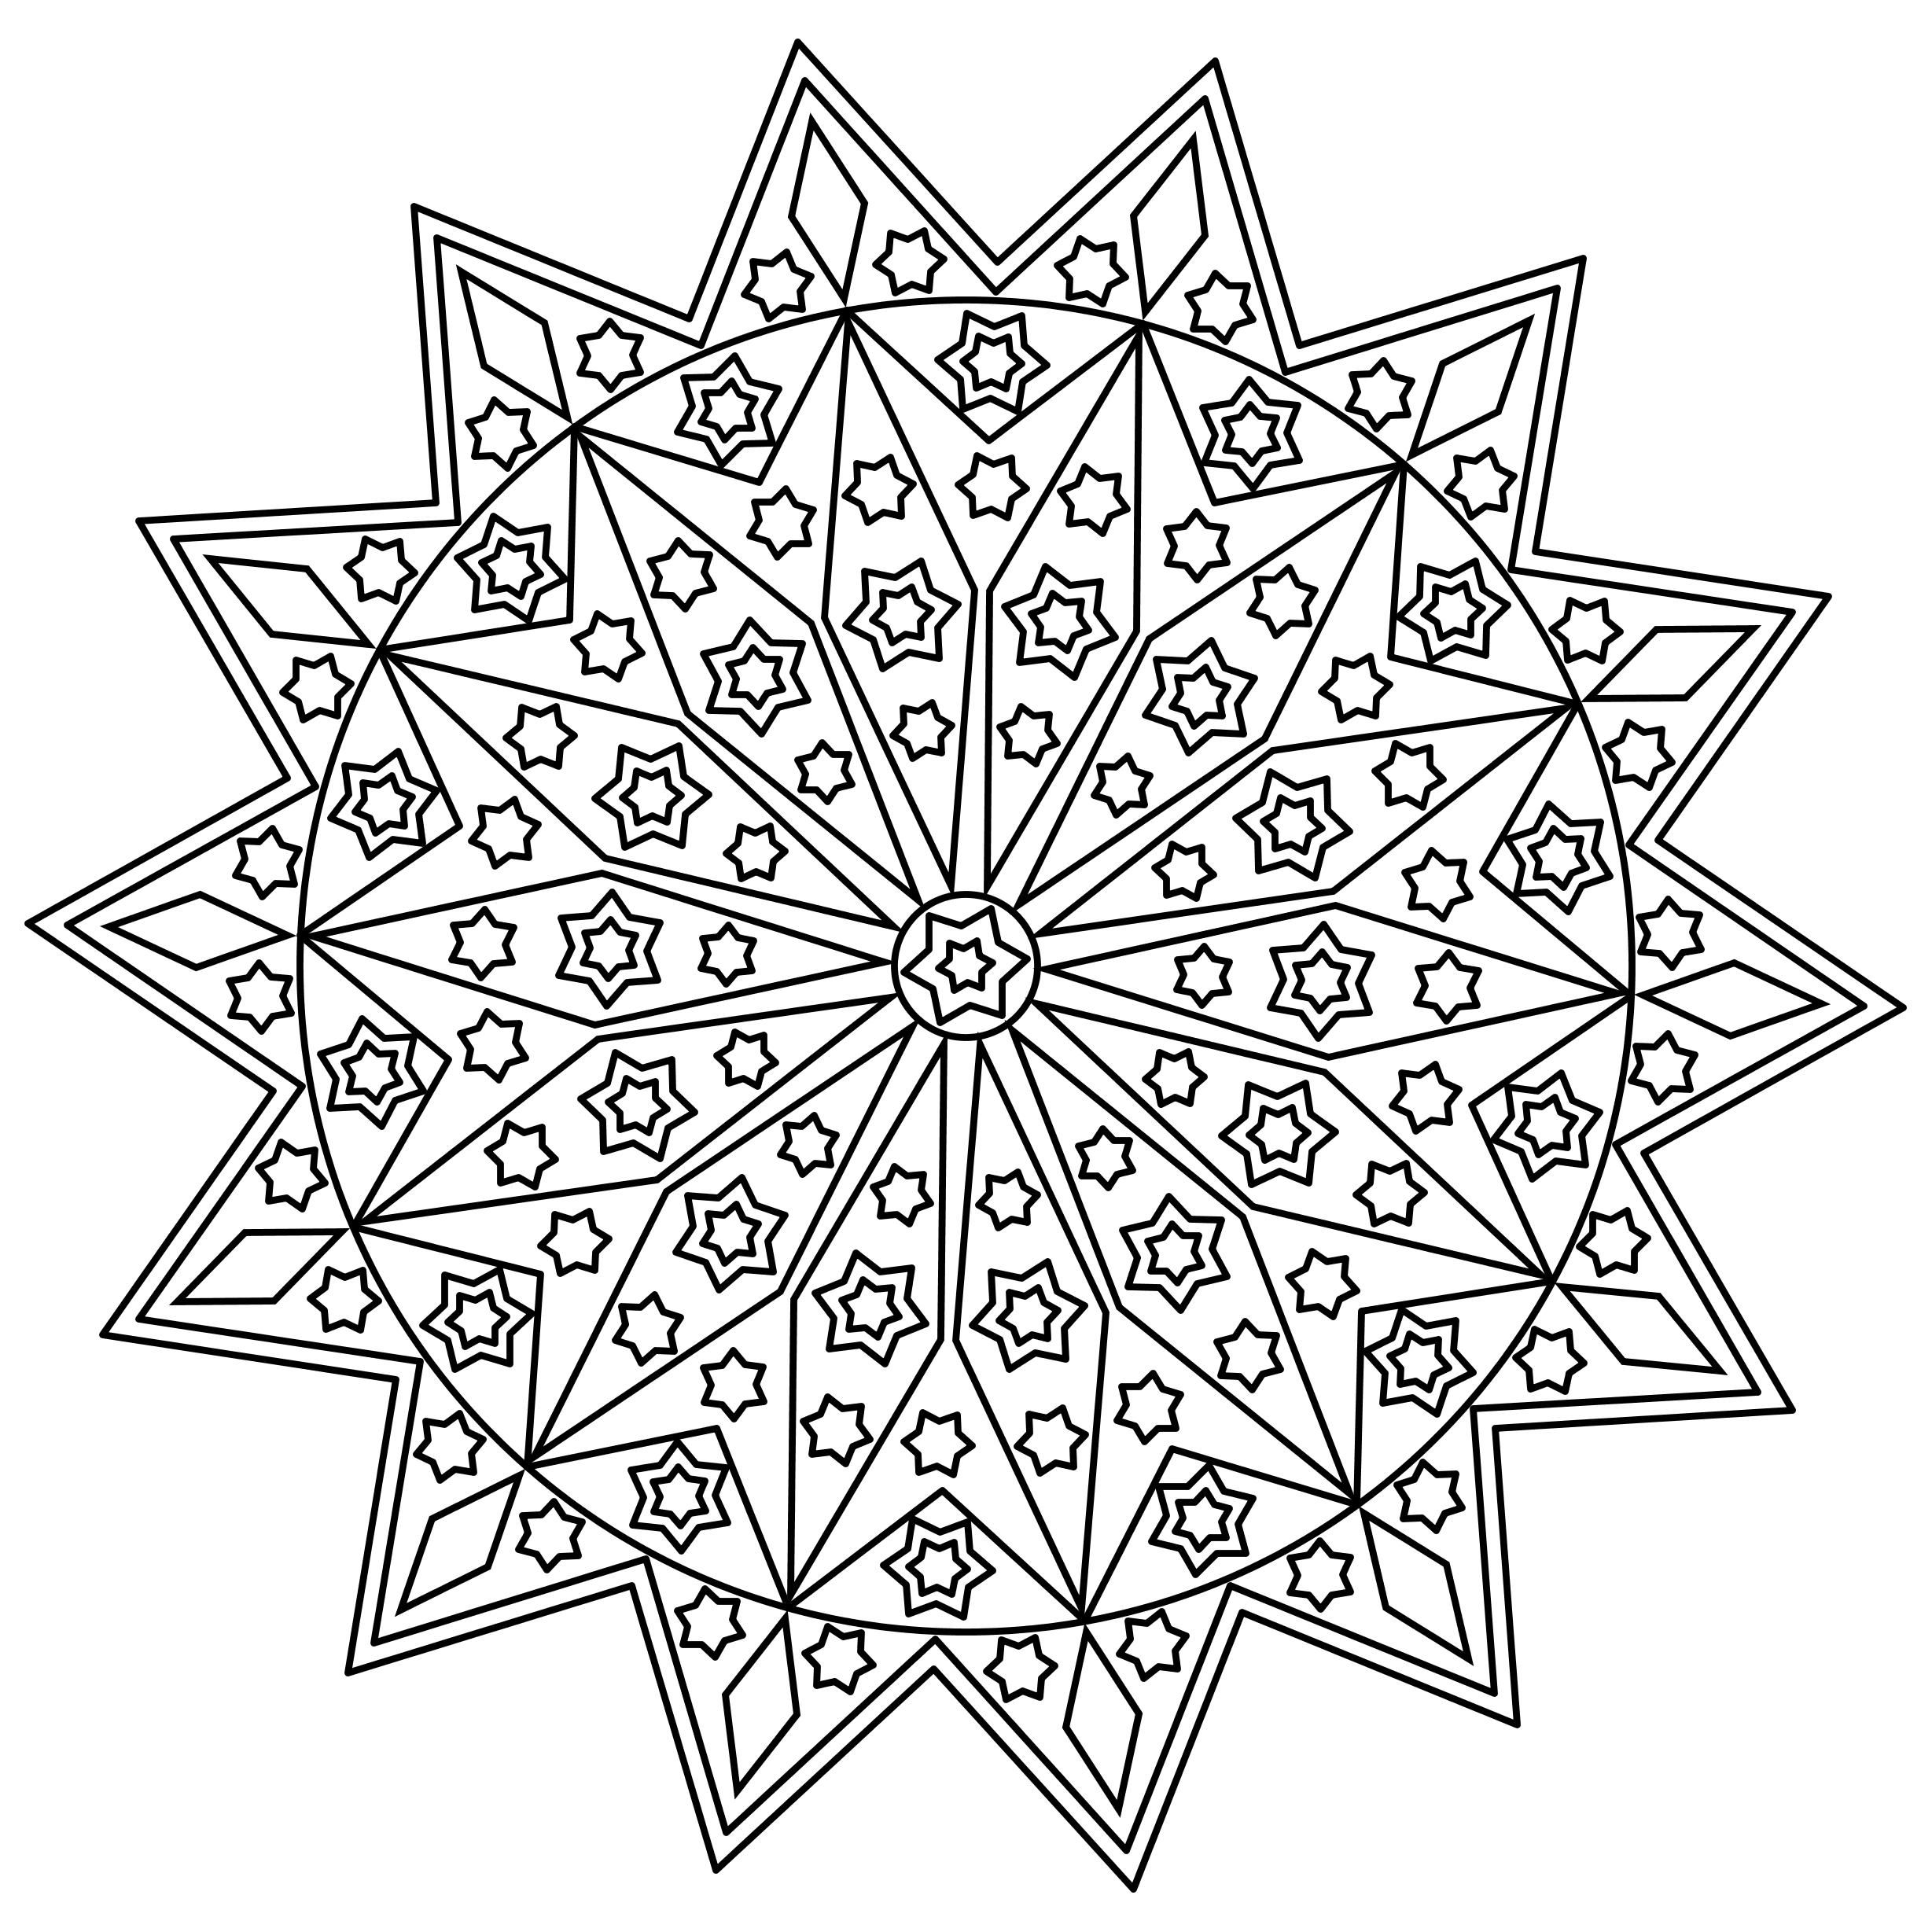 Mandala coloring pages amazon - An Image From Patty S New Mandala Coloring Pages Book Available On Amazon